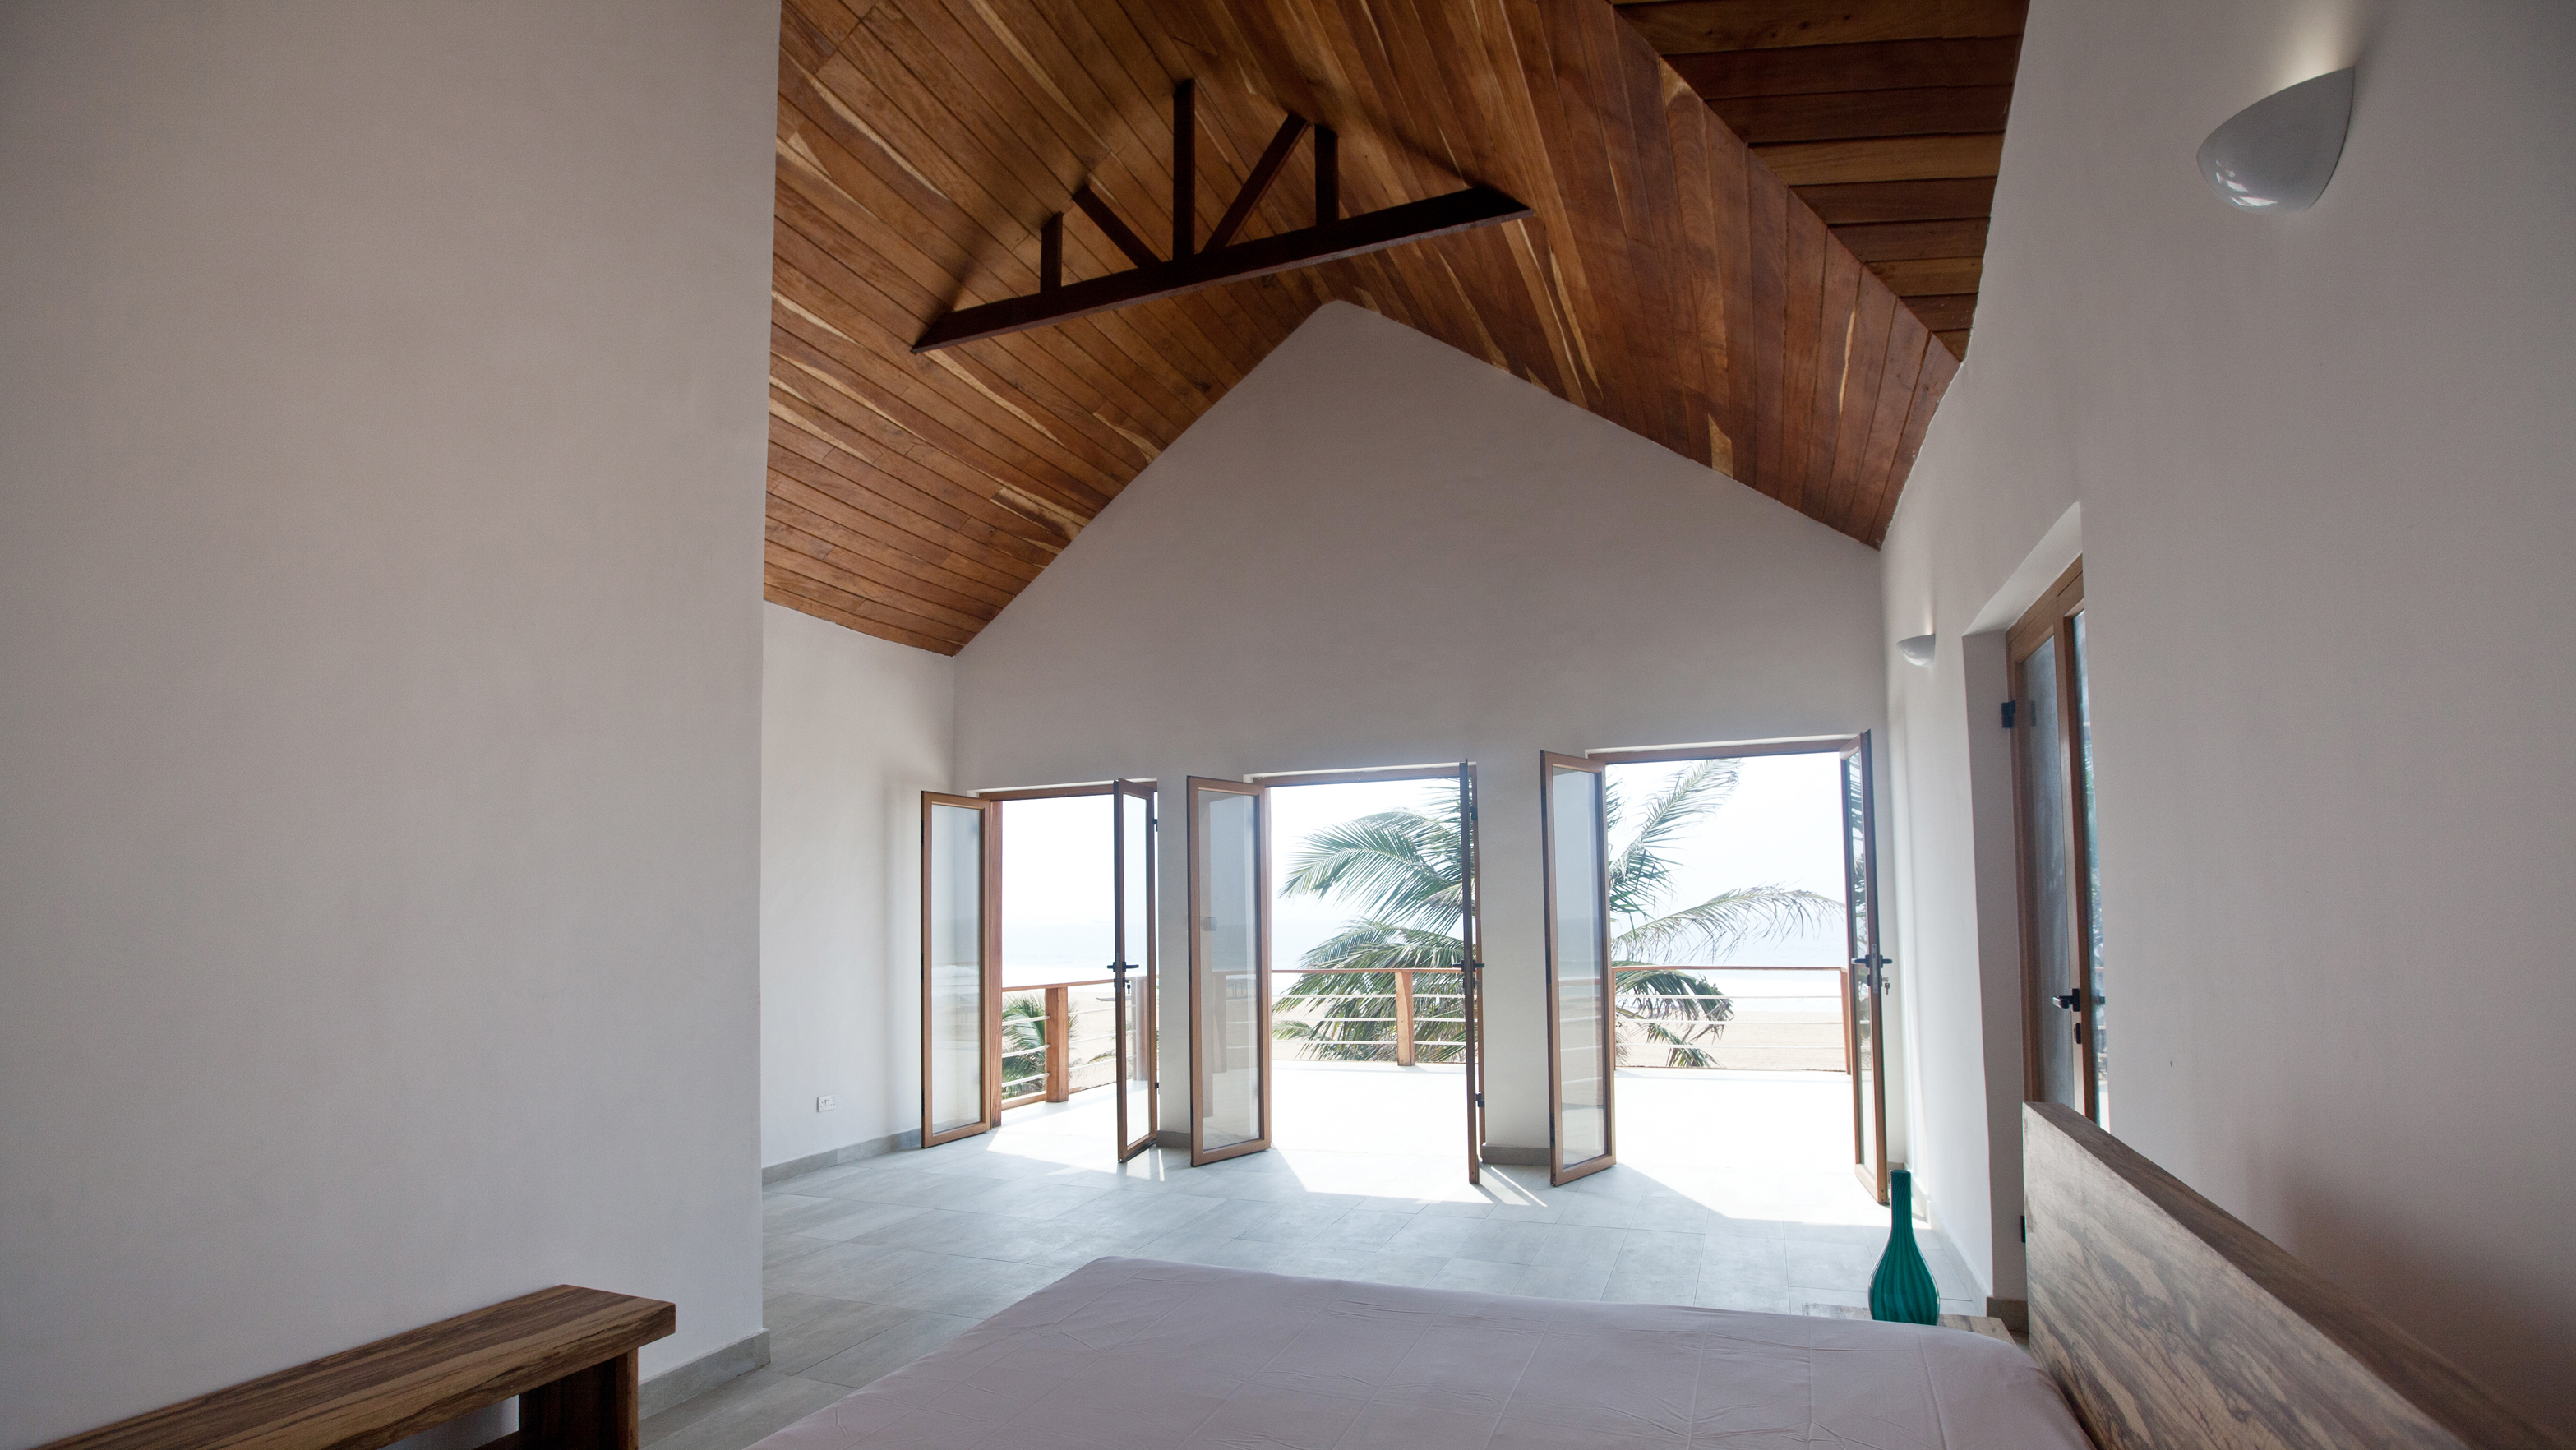 PRIVATE BEACH HOUSE INTERIOR 3